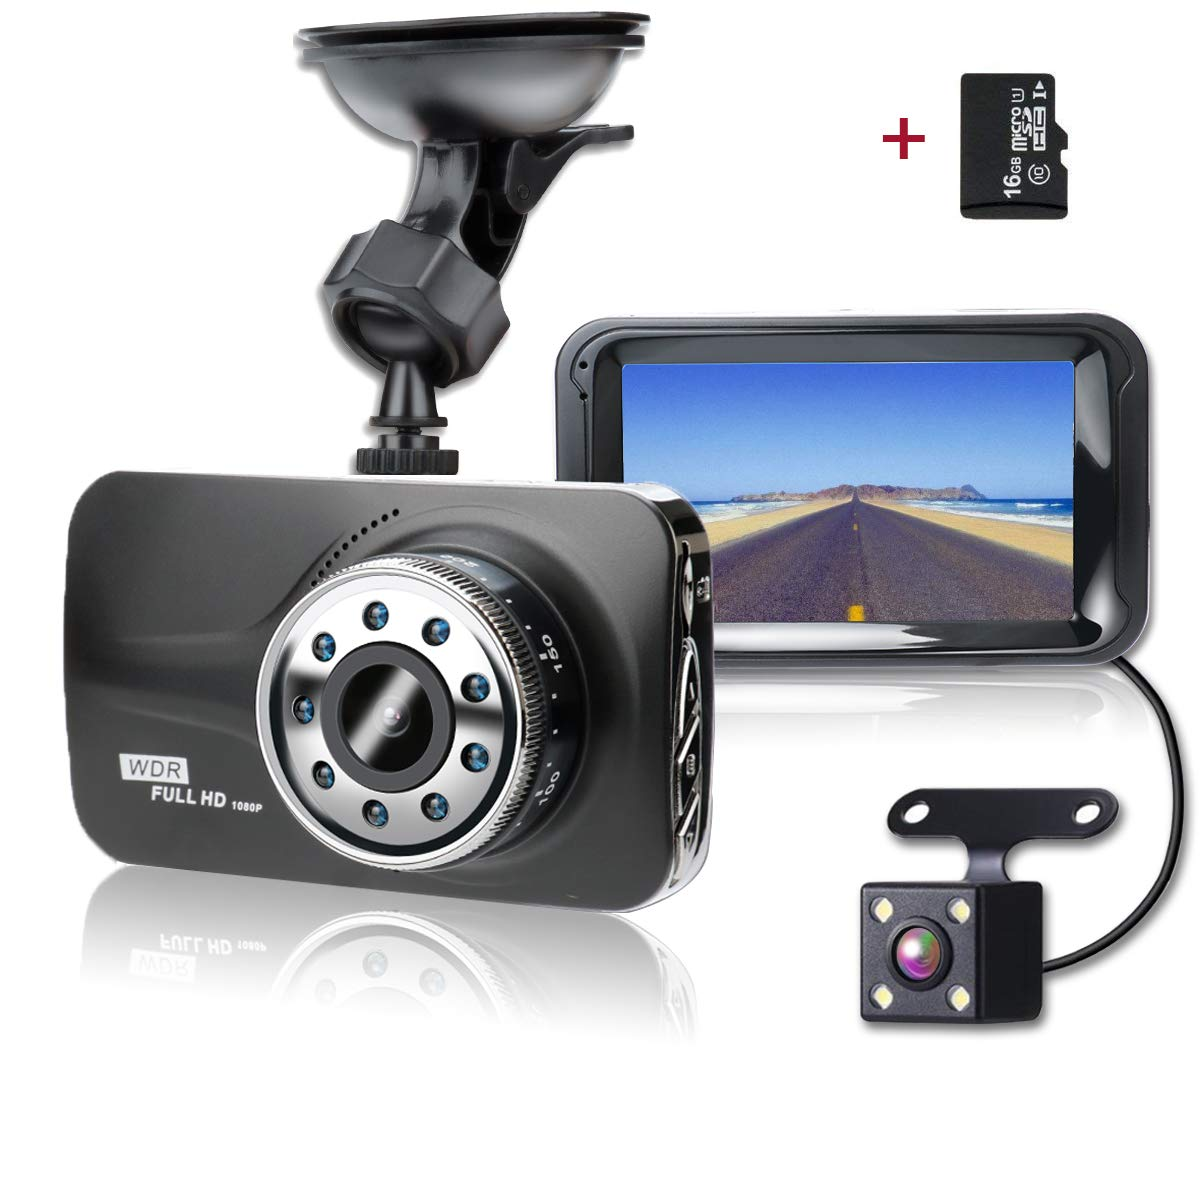 SHISHUO Dash Cam Front and Rear - 1080P 3' LCD Vehicle Dual Recording Cameras with 16GB Micro SD Card, Built In G-Sensor, Motion Detect, Parking Monitor, HDR Night Vision